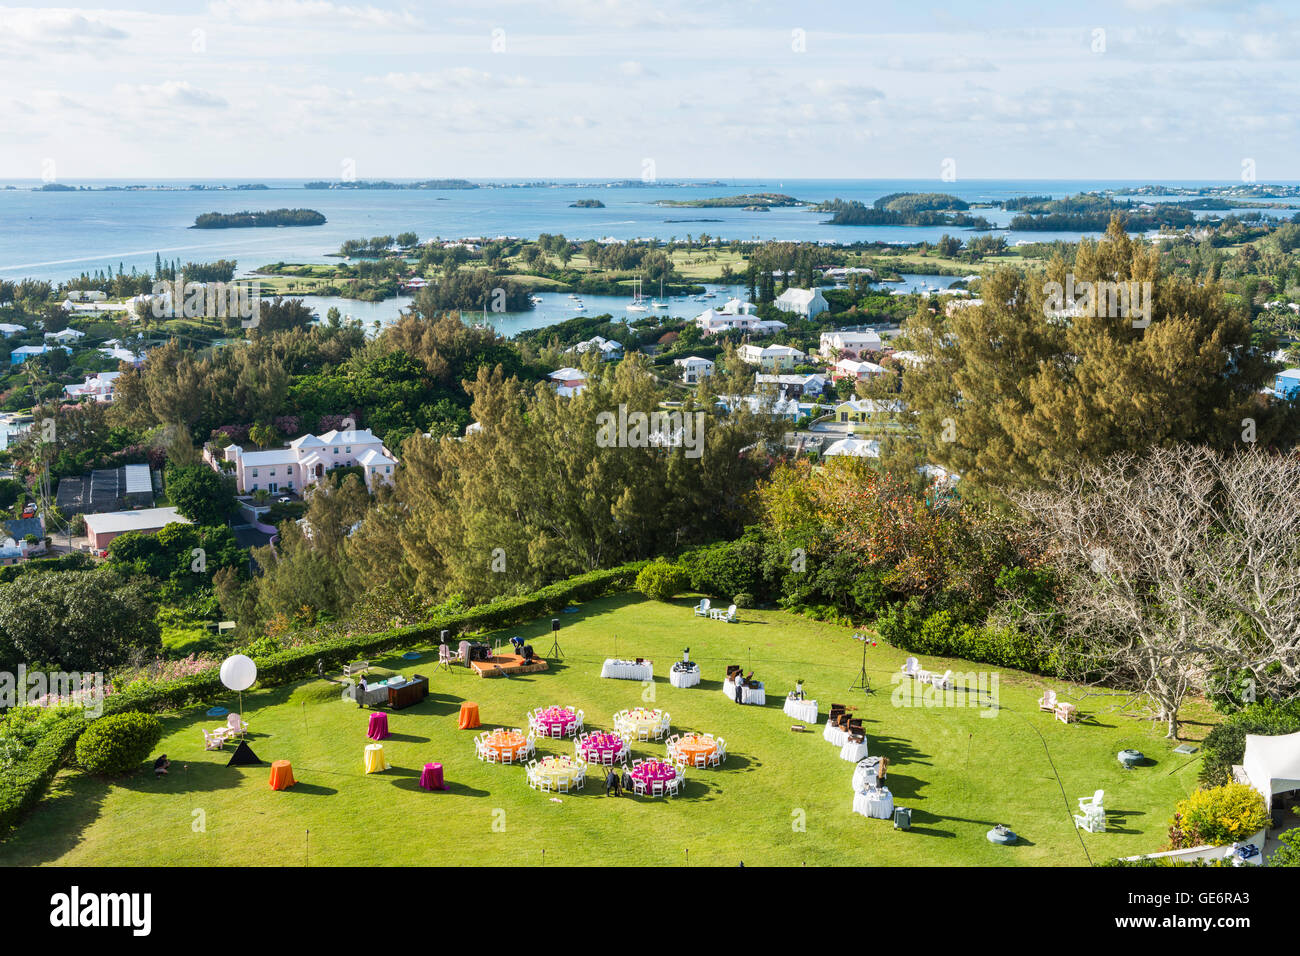 Lawn set for a garden party at the The Fairmont Southampton luxury resort at Southampton, Bermuda. - Stock Image